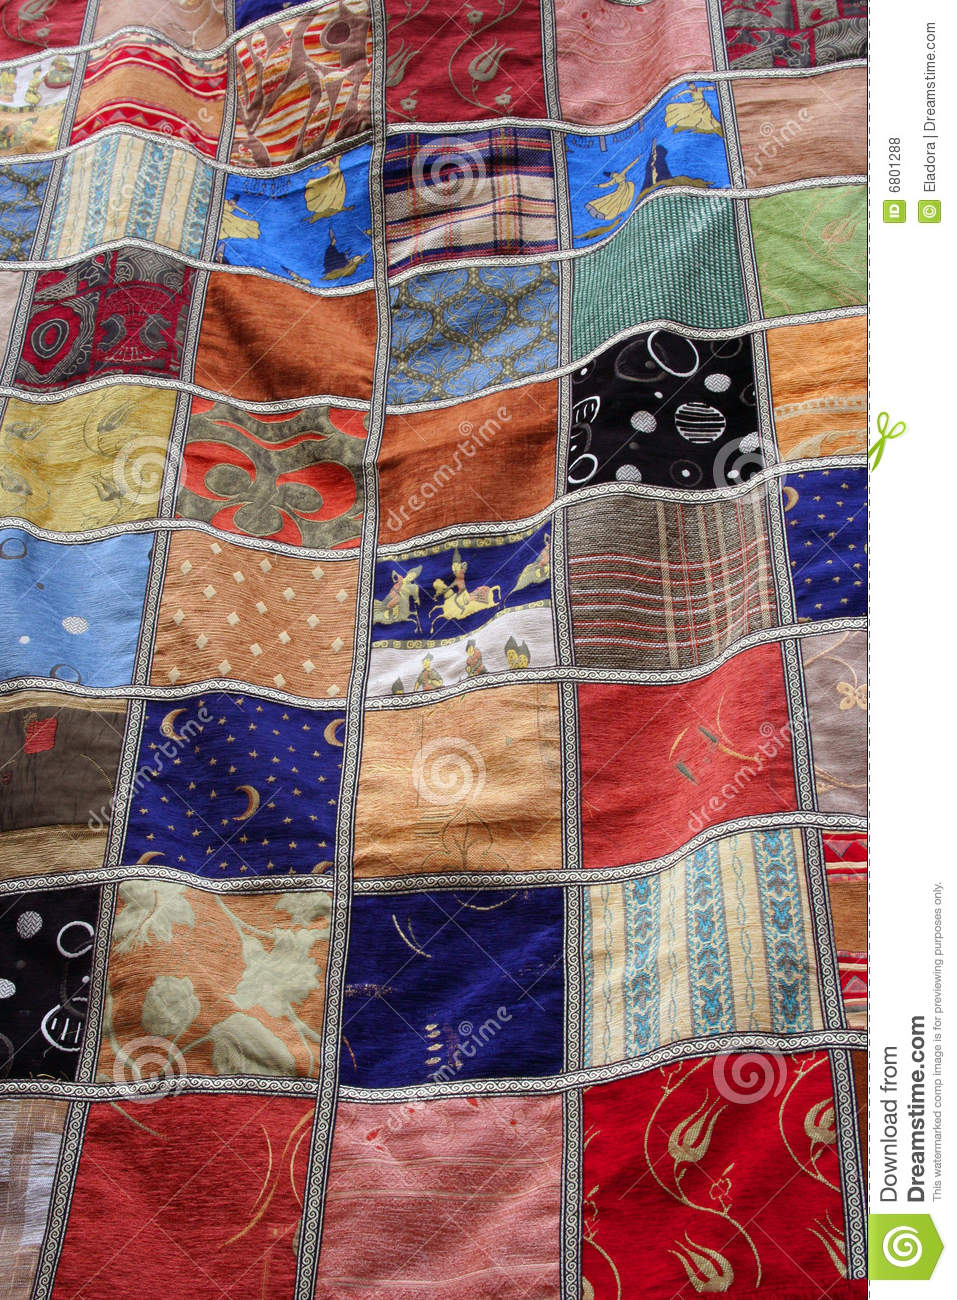 Patchwork Quilt Blanket Stock Photo Image Of Background